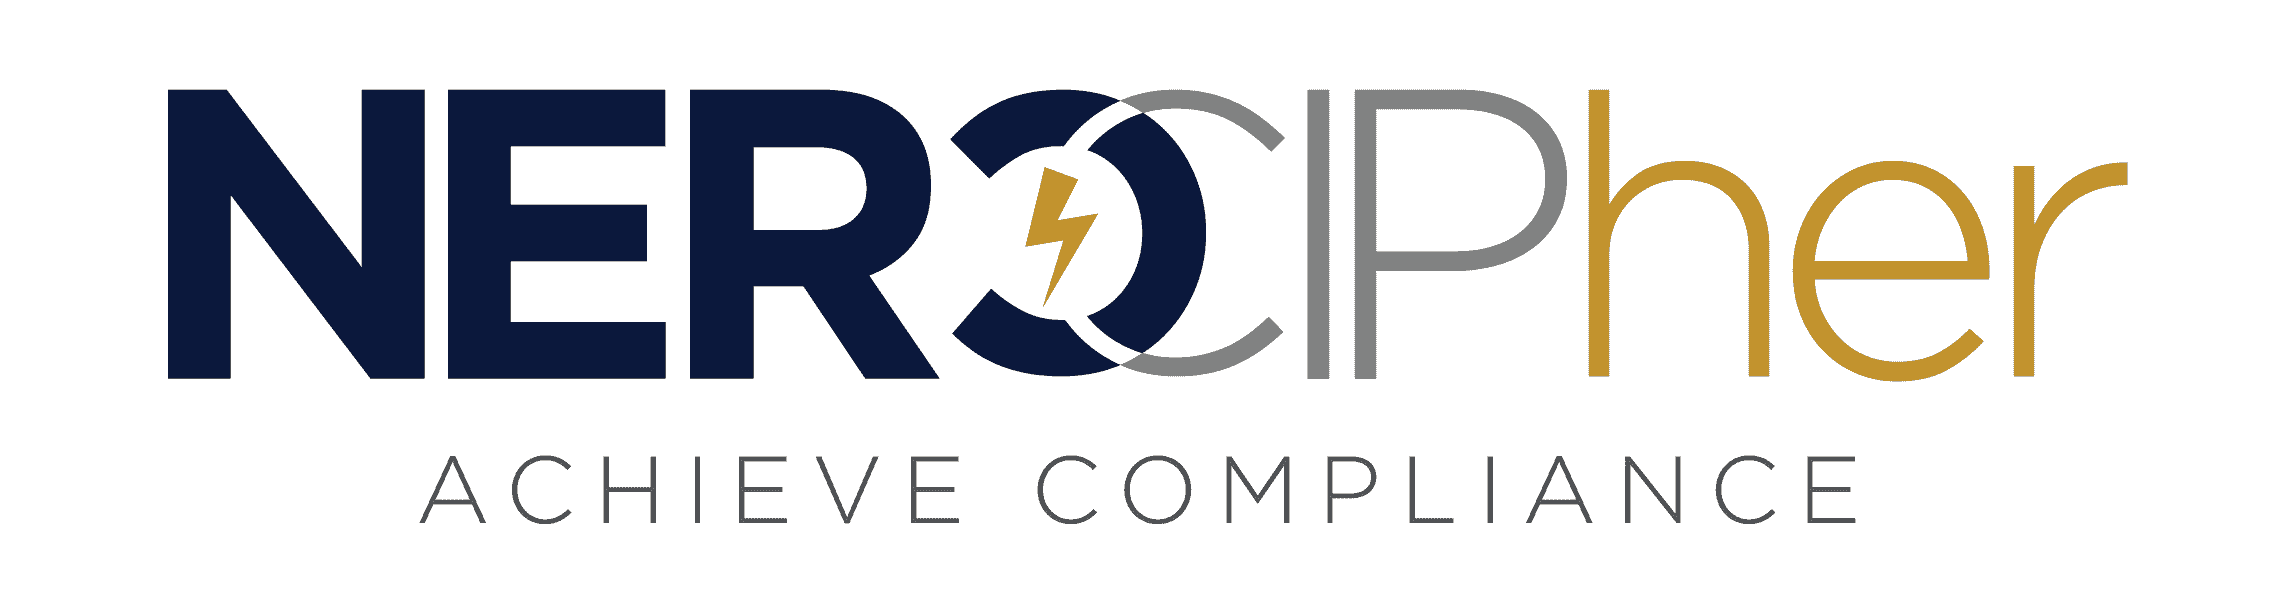 NERC Critical Infrastructure Protection